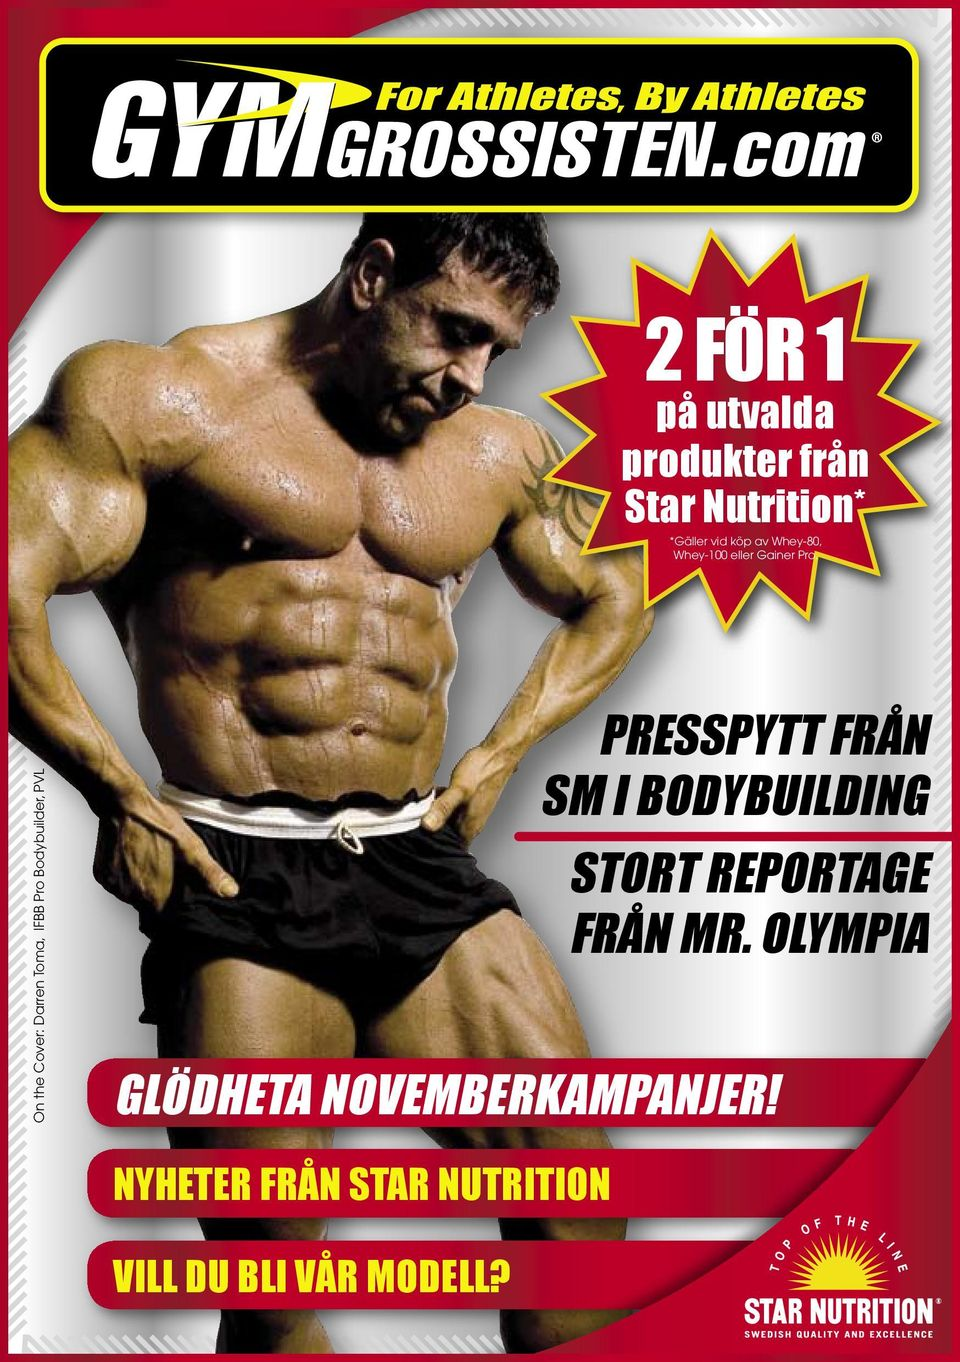 On the Cover: Darren Toma, IFBB Pro Bodybuilder, PVL PRESSPYTT FRÅN SM I